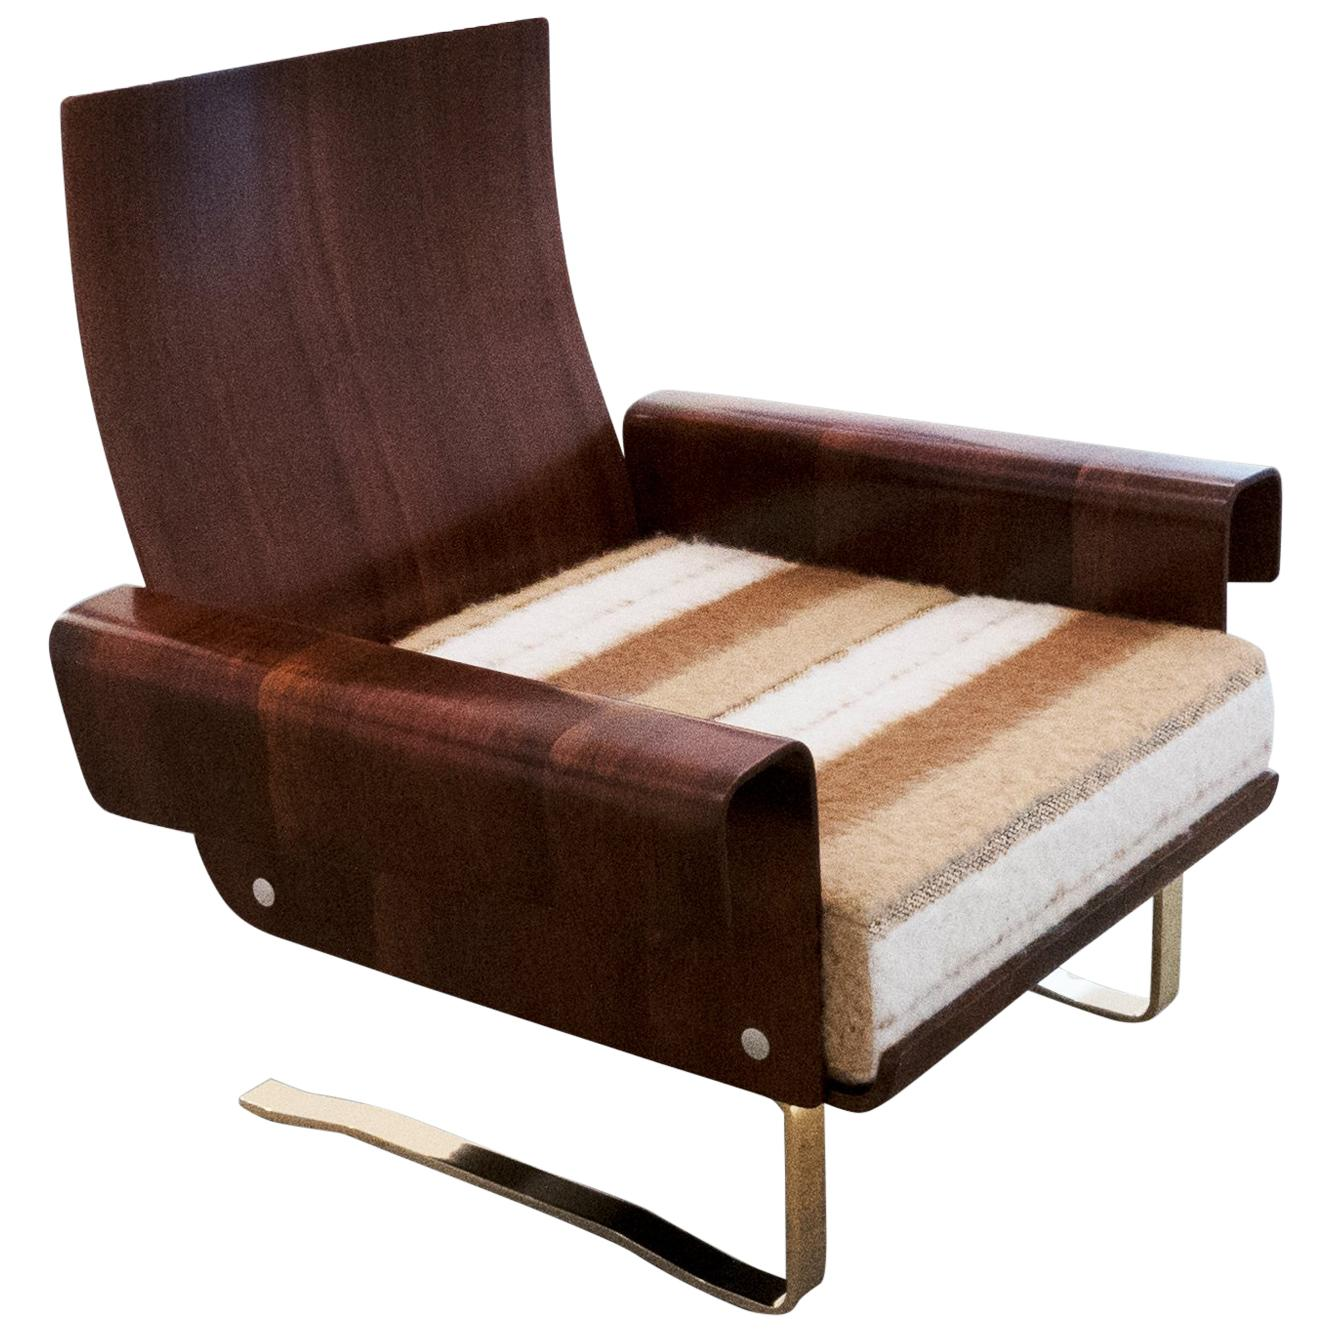 Midcentury Cantilever Lounge Chair